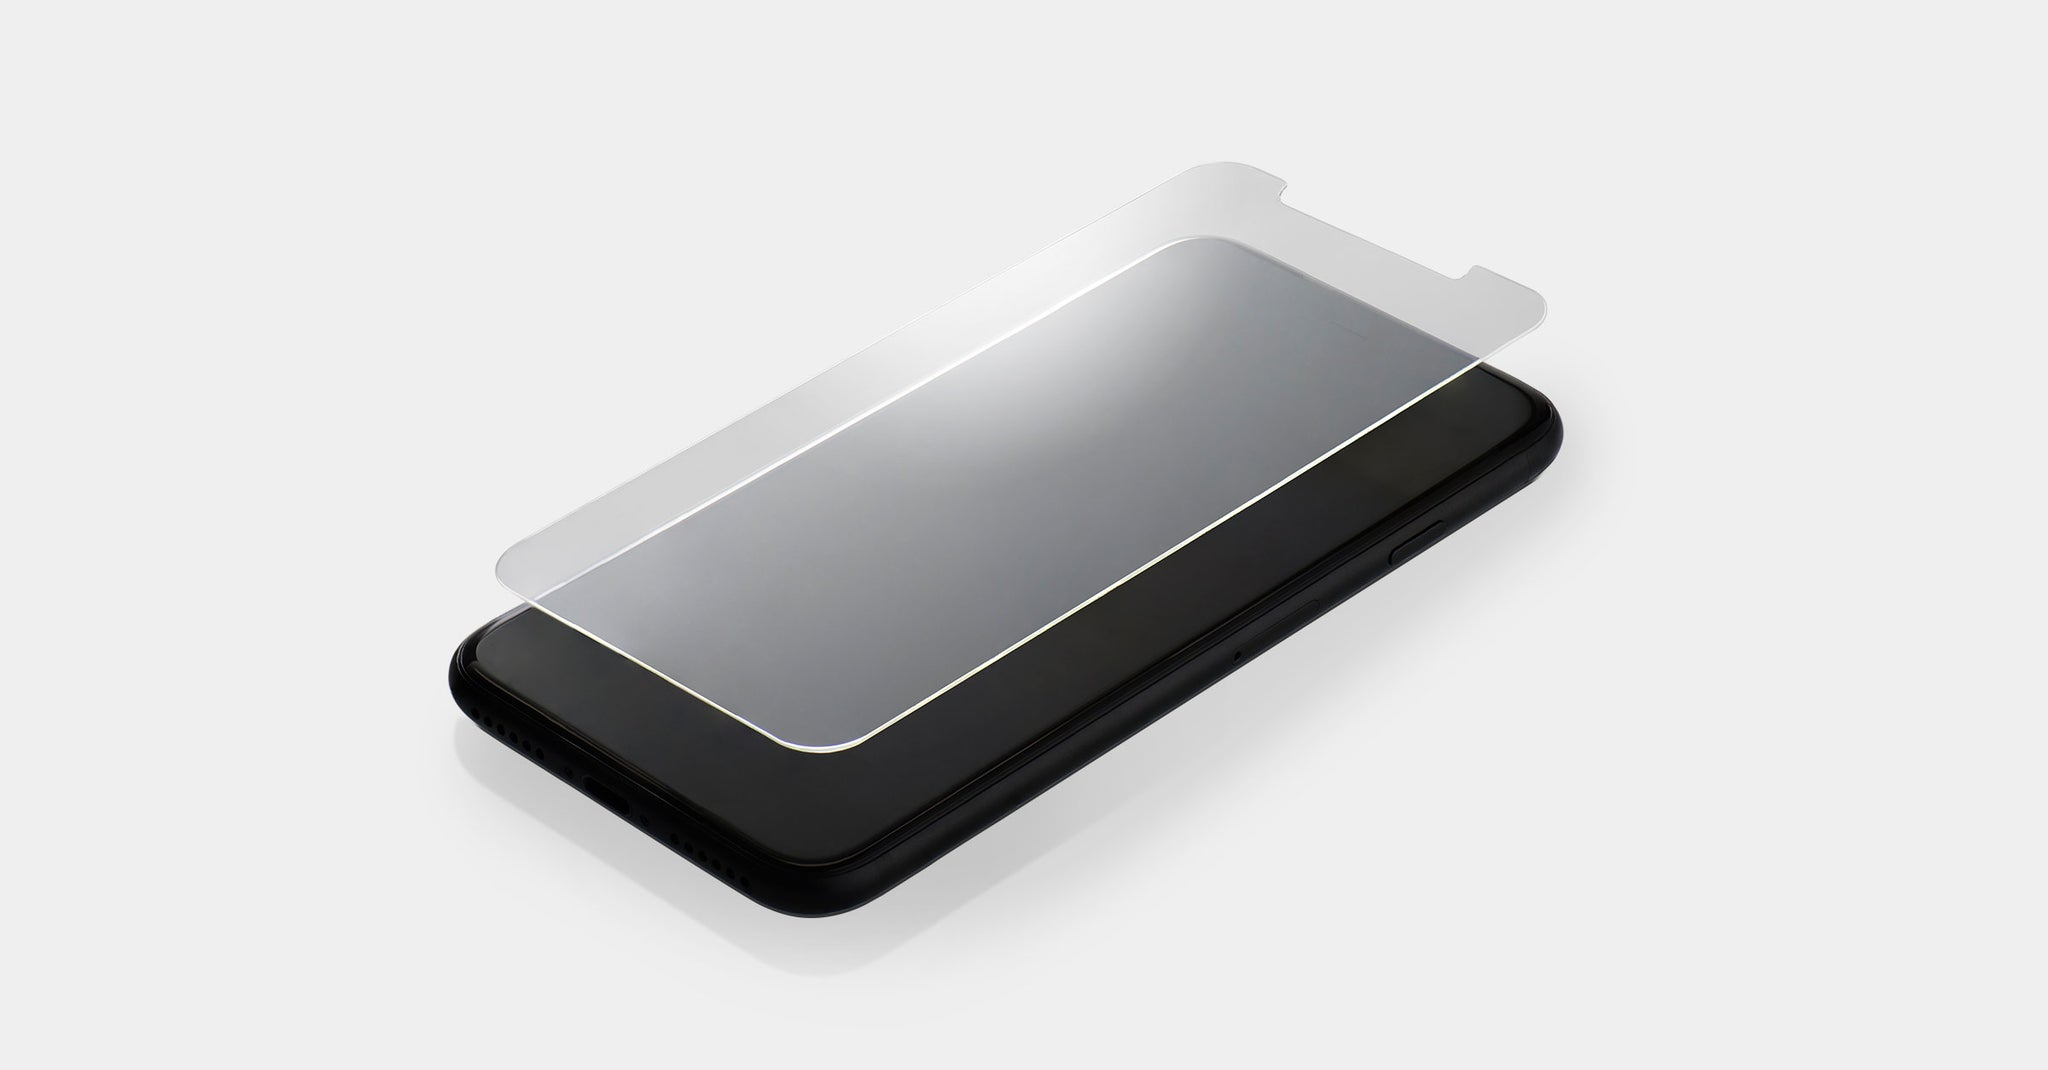 tempered glass screen protector by totallee